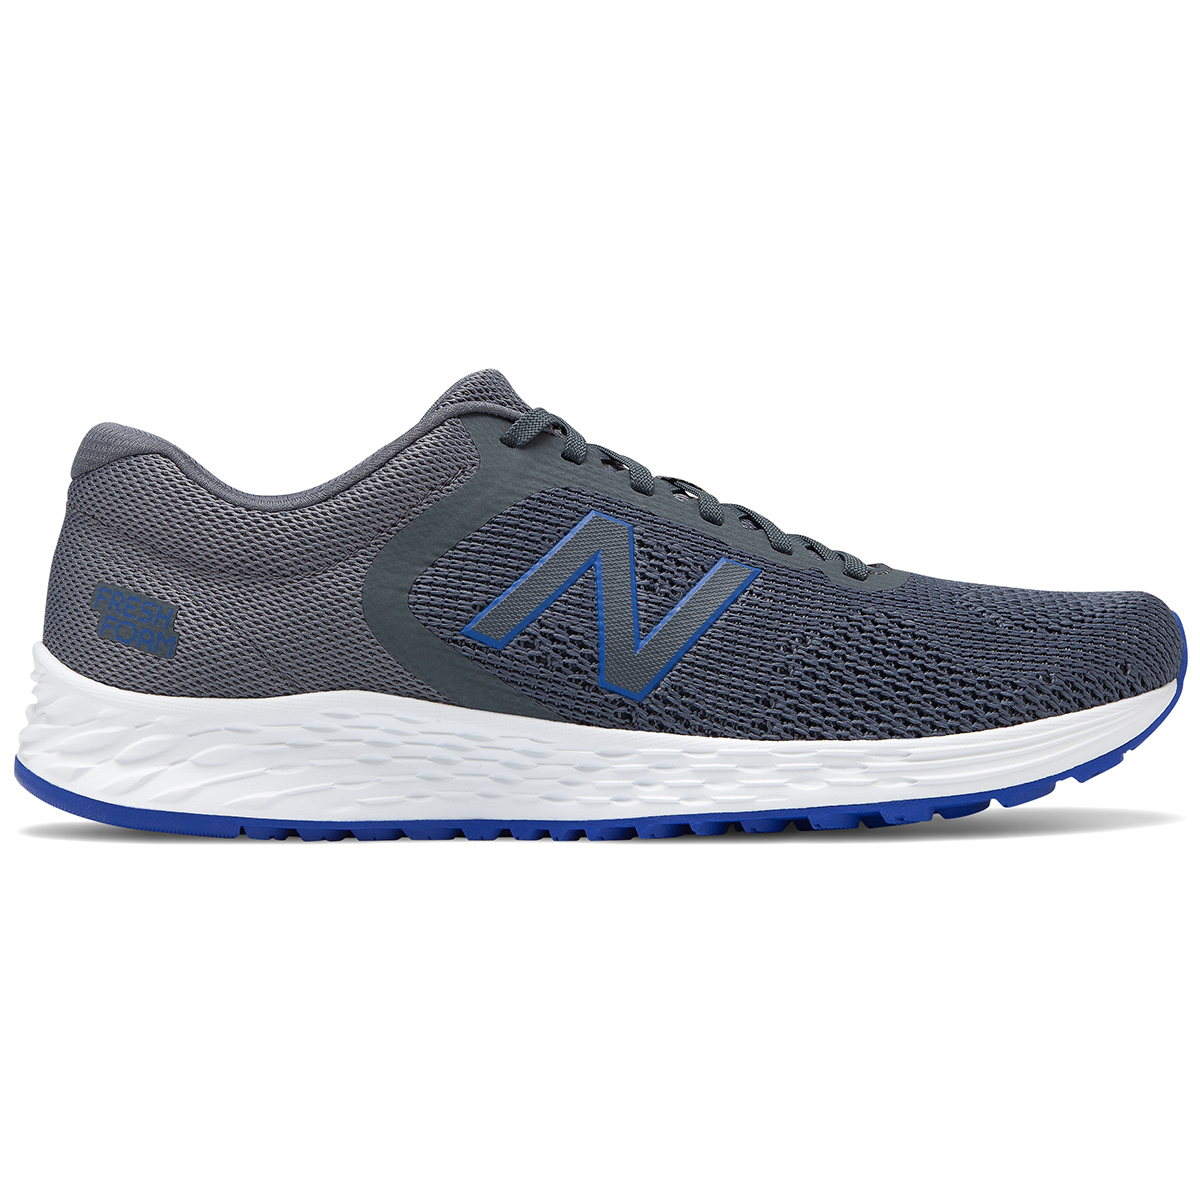 New Balance Men's Fresh Foam Arishi V2 Running Shoes - Black, 13